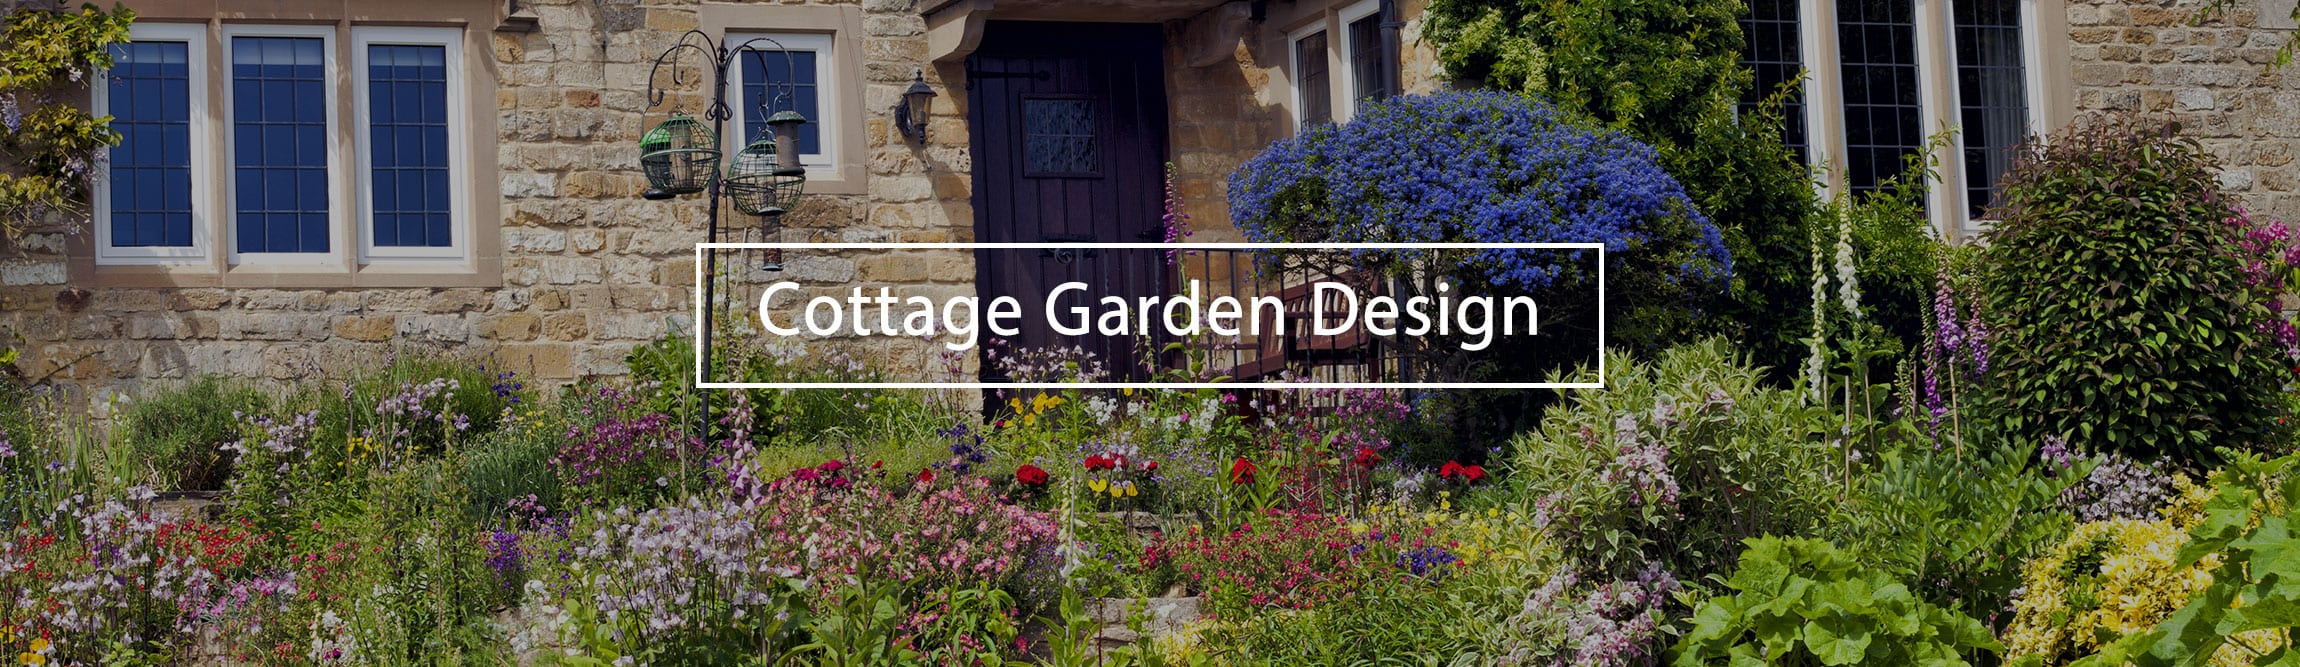 David Domoney Cottage Garden Design